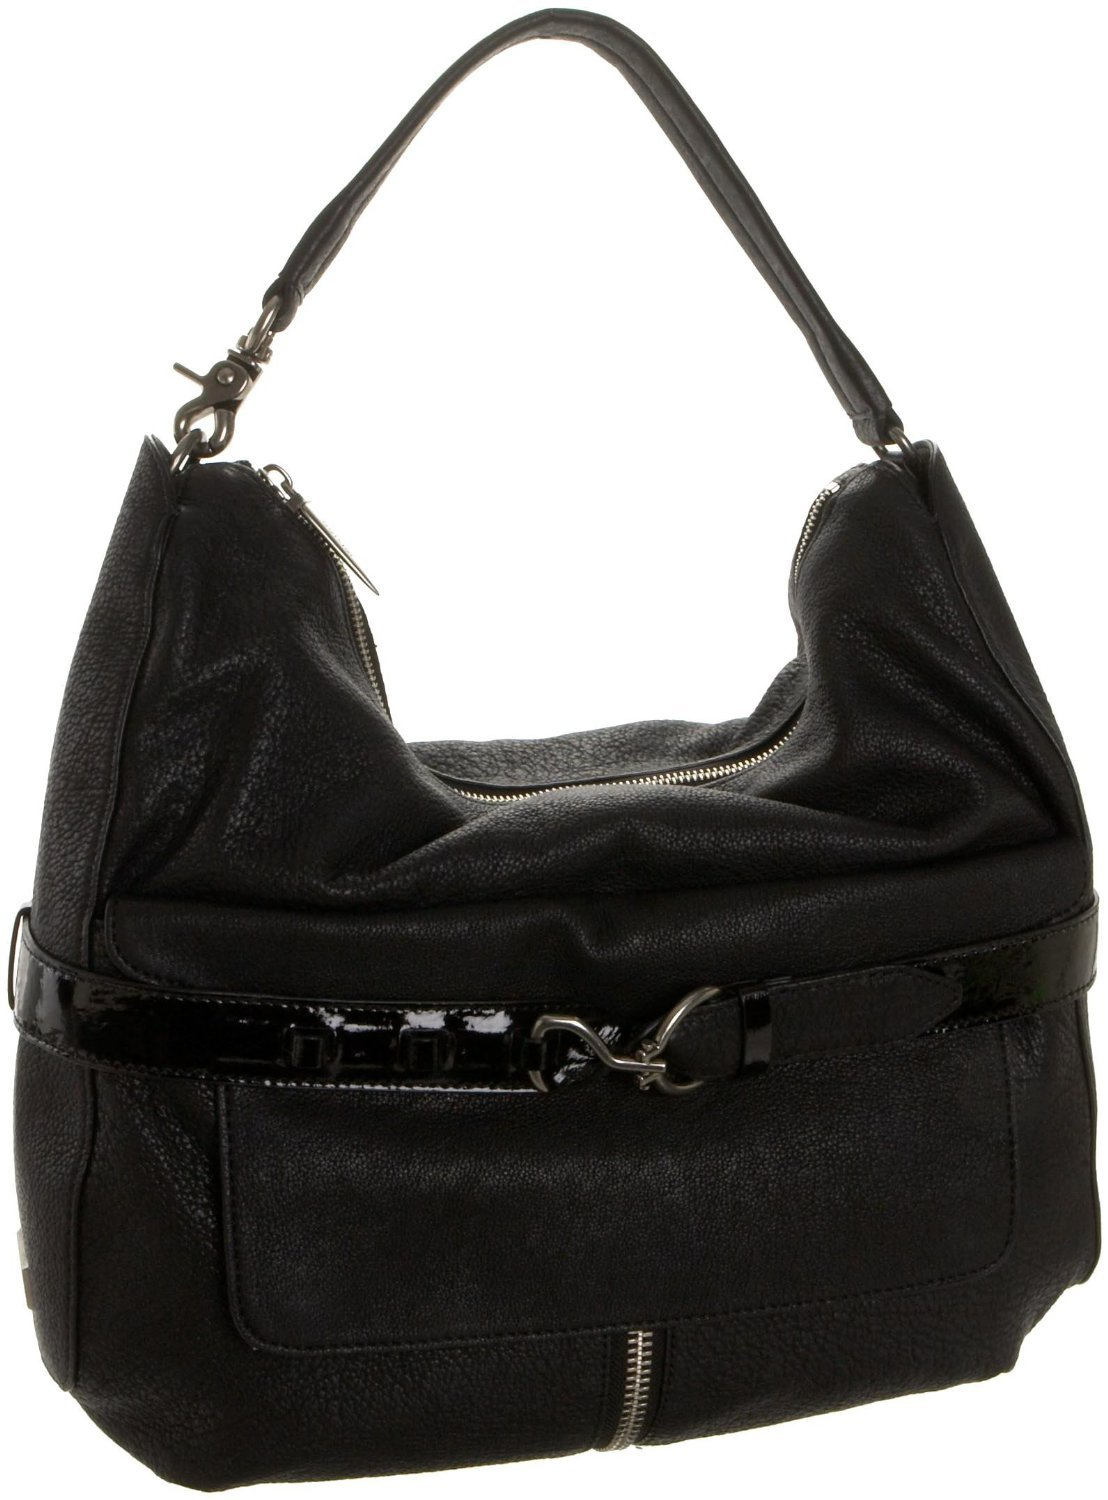 $545 Botkier APOLLO Hobo Bag - Black Cowhide NWT